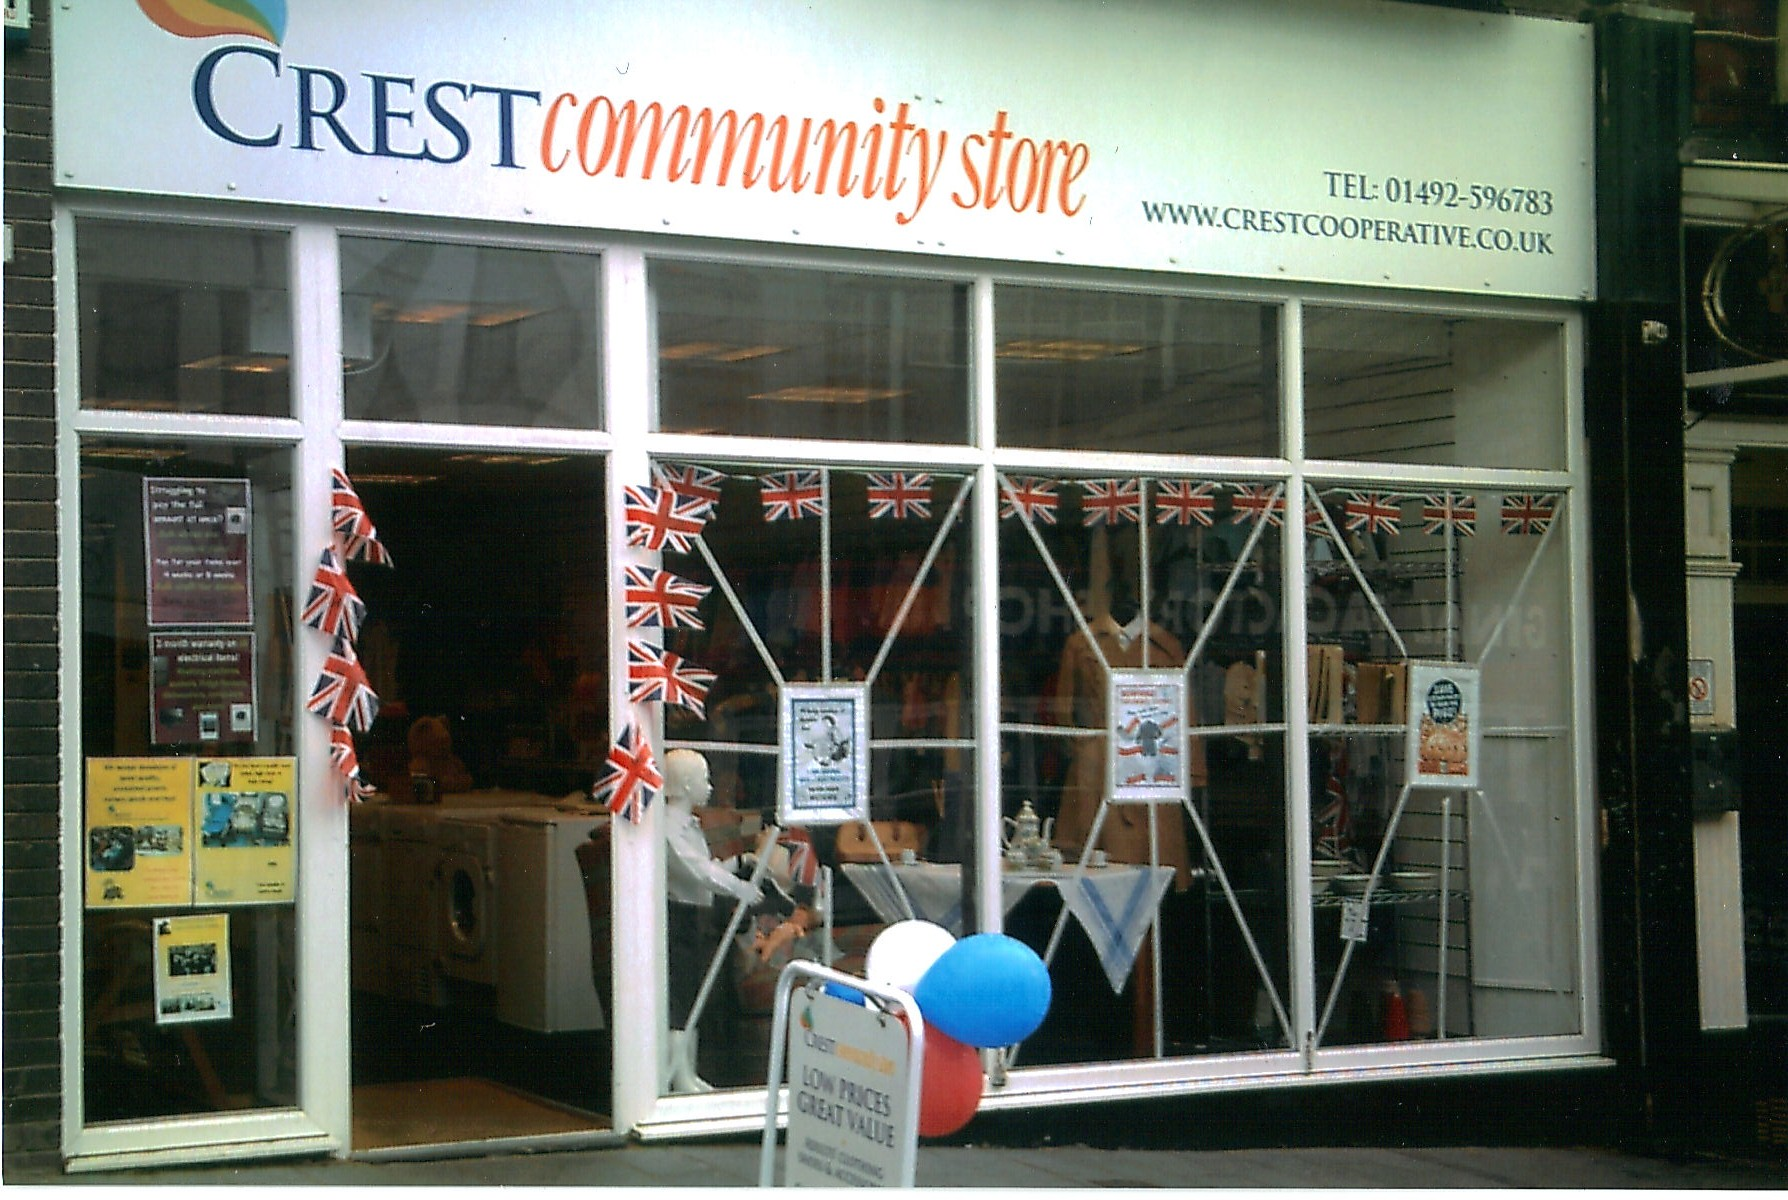 Crest Community Store in Colwyn Bay